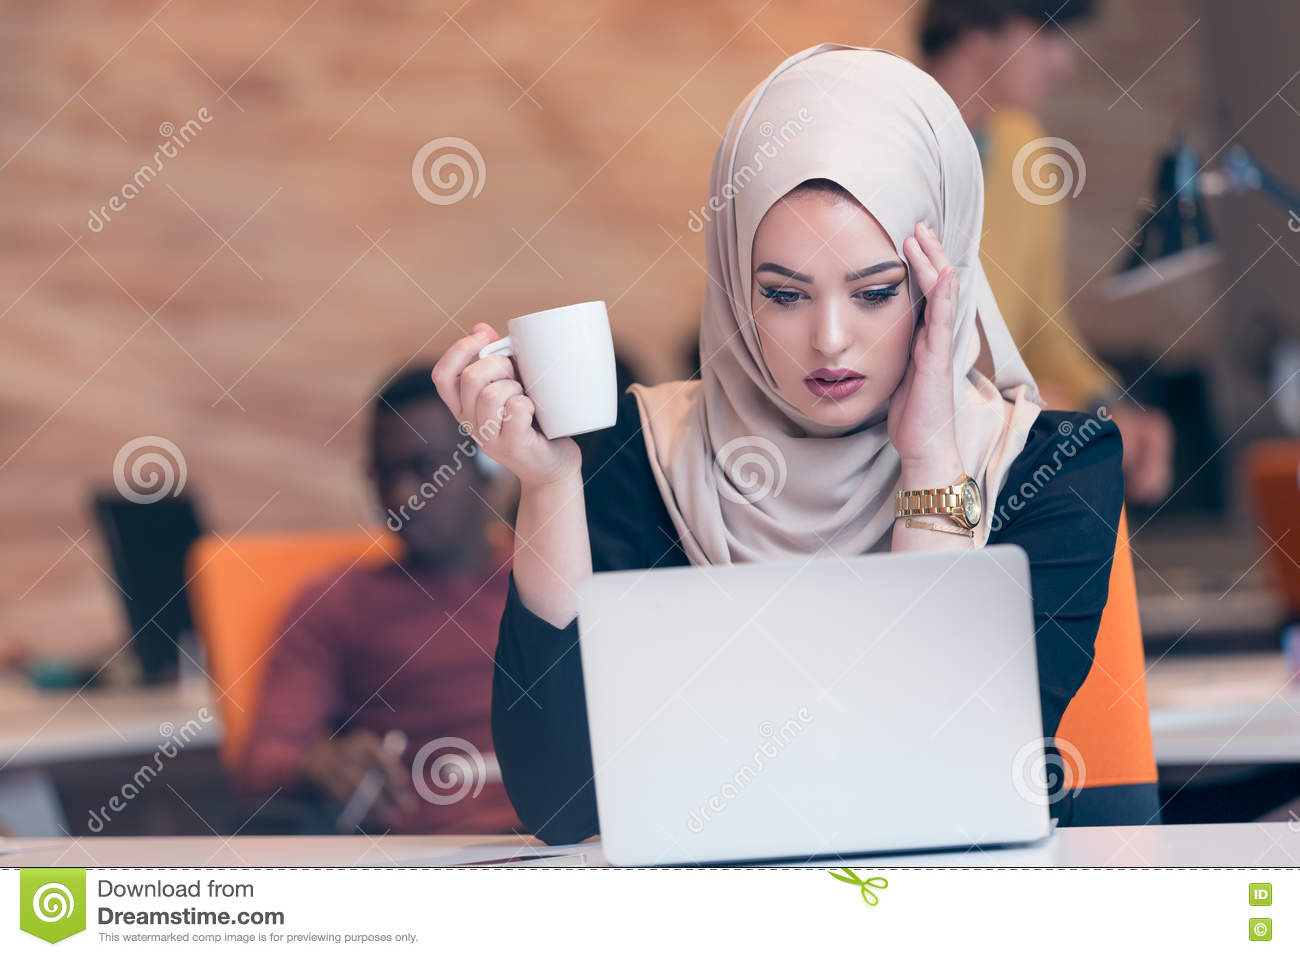 arabic-business-woman-wearing-hijab-working-startup-office-young-women-her-diversity-multiracial-concept-79767033